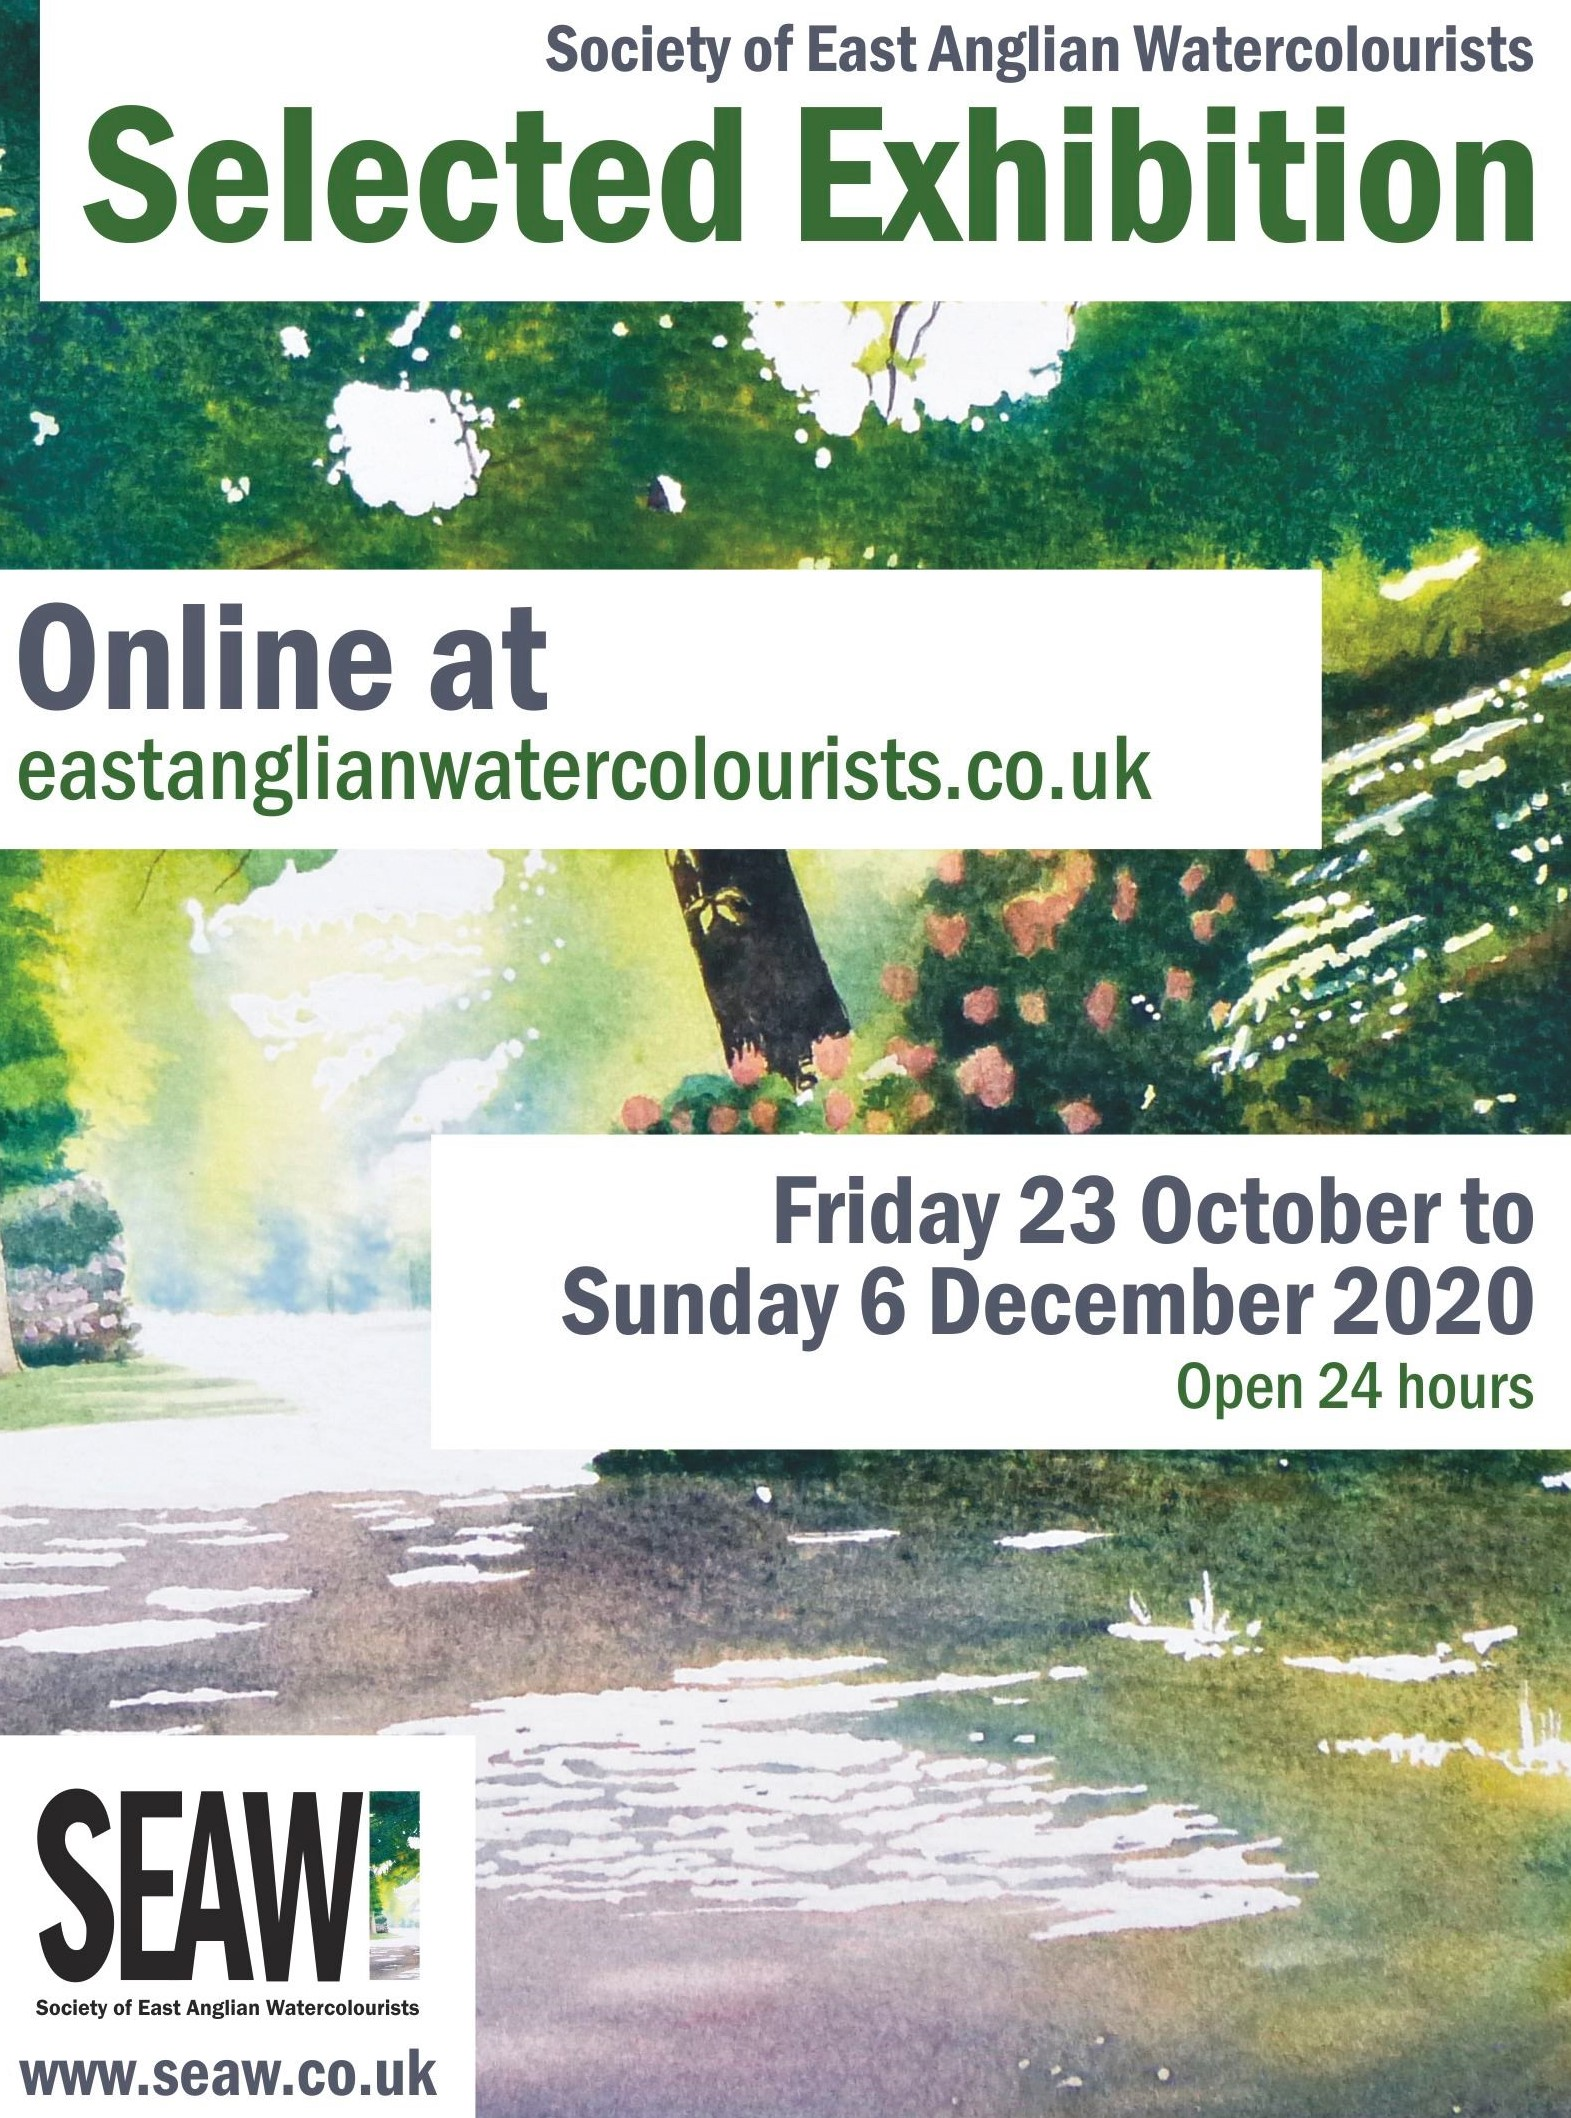 Society of East Anglian Watercolourists Selected Exhibition 2020